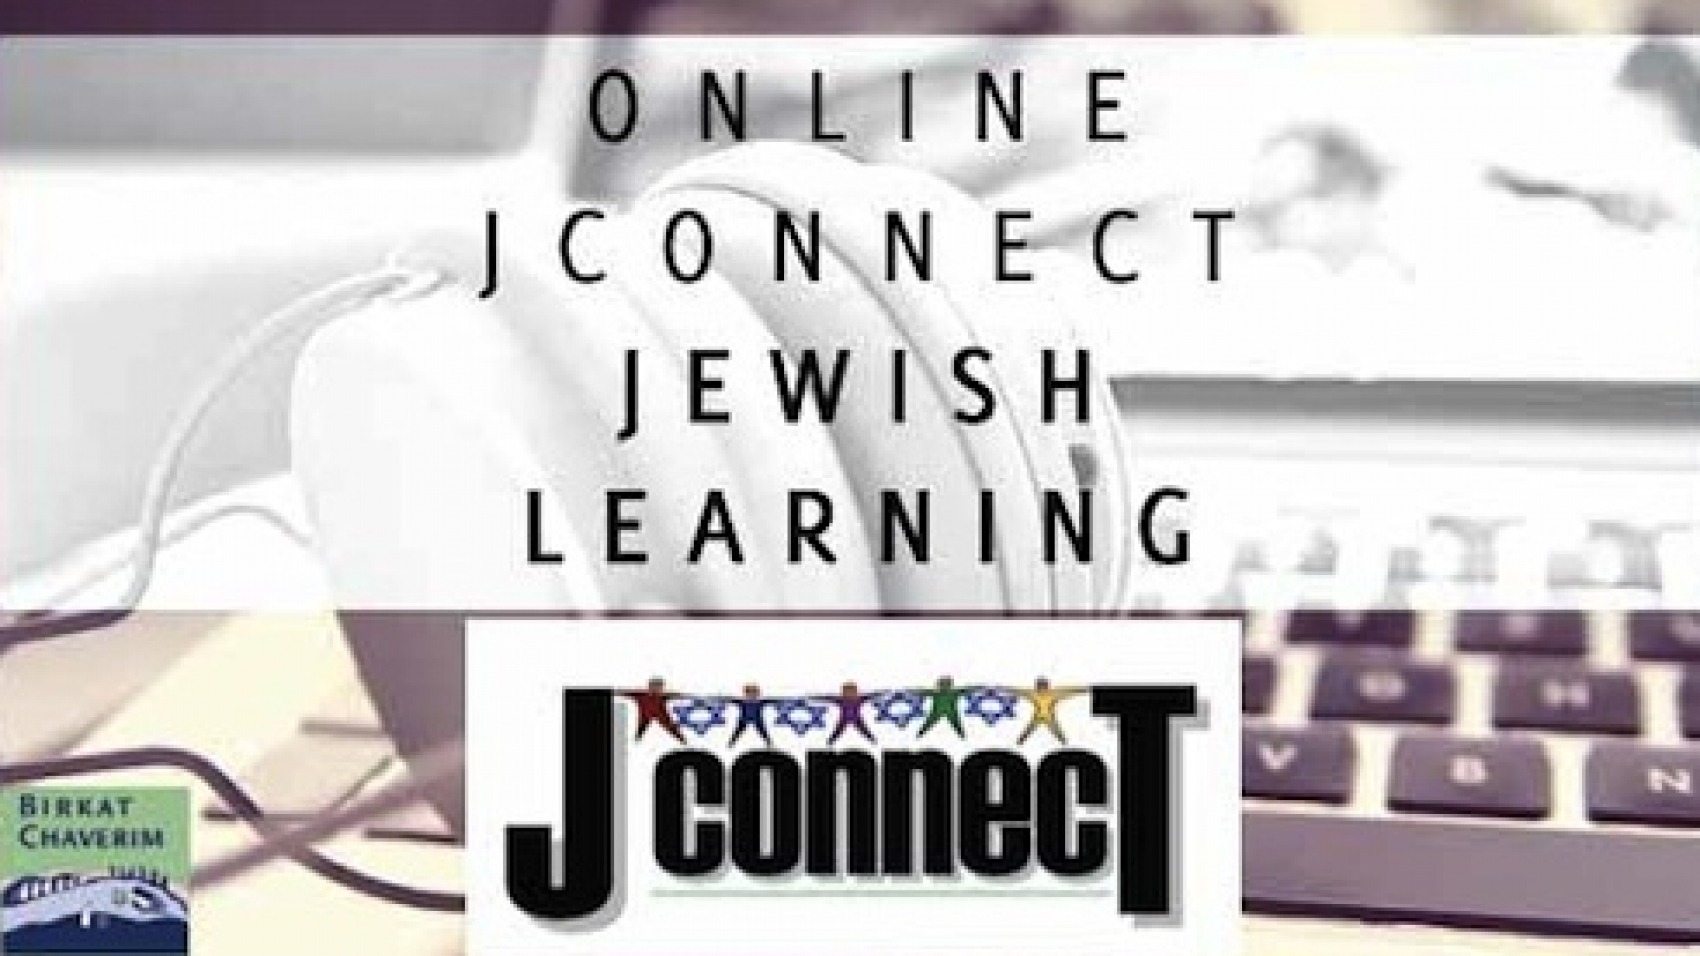 Online Jewish Learning with JConnect via Birkat Chaverim. A Guest Post by L. Rappaport